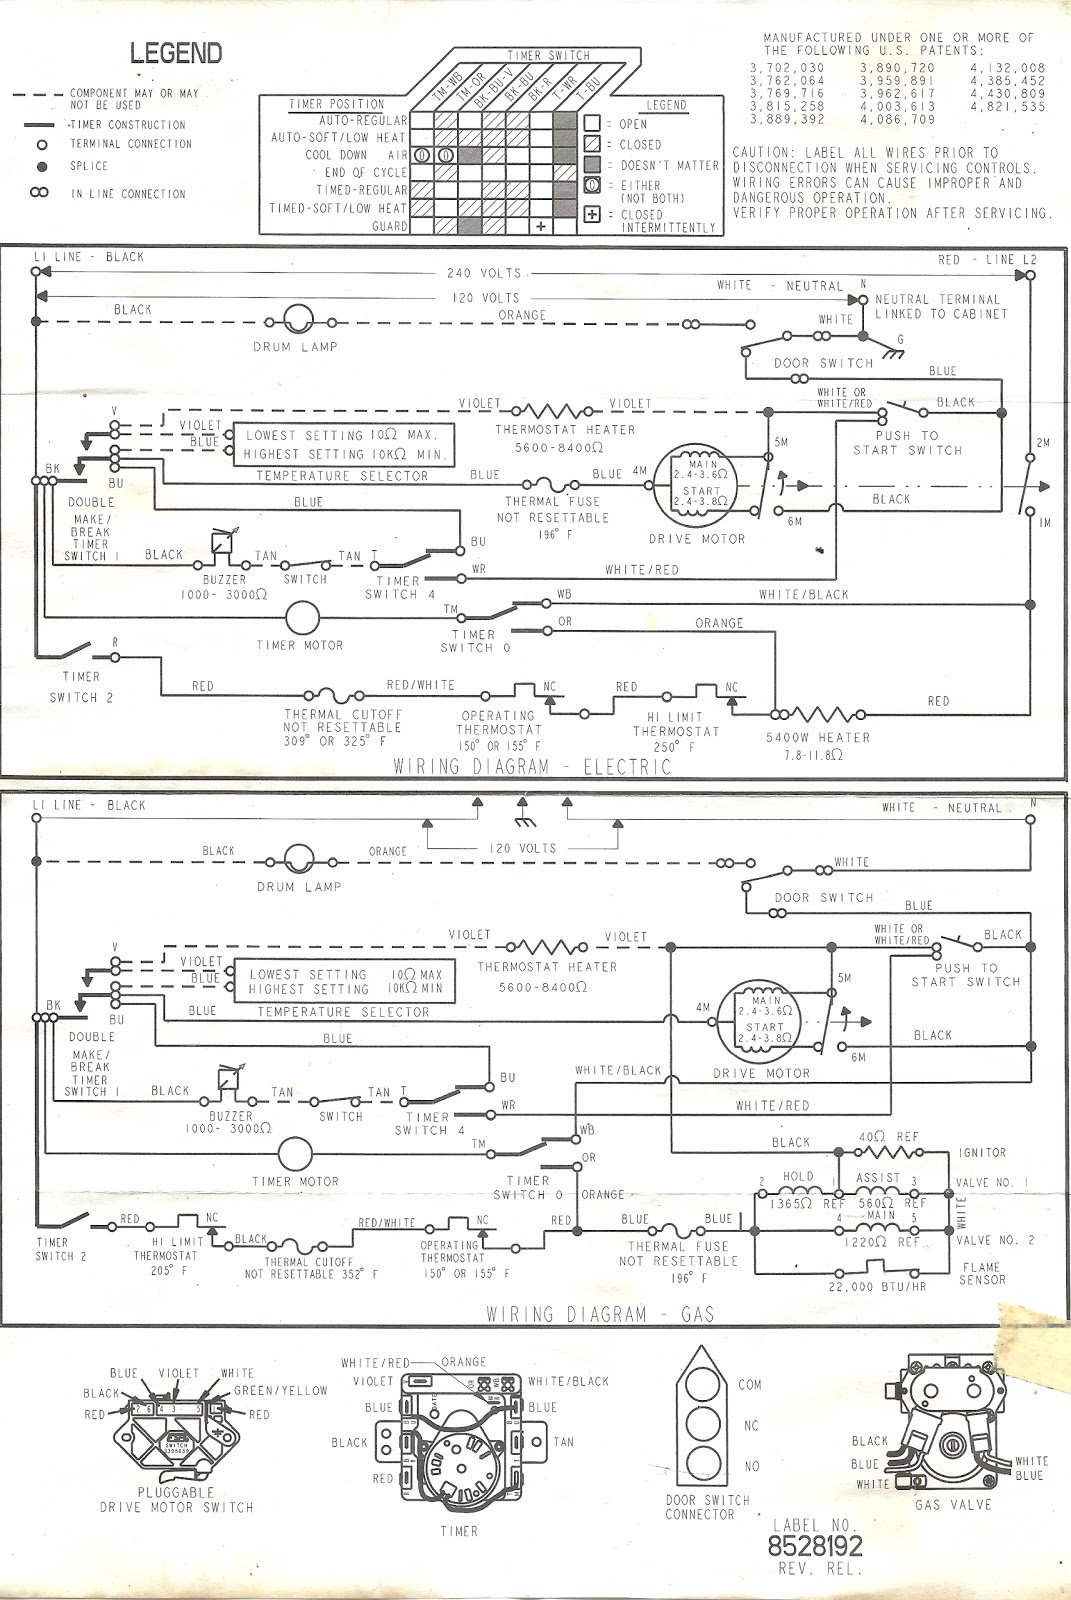 WRG-5951] Unimac Washer Wiring Diagram on rockwell wiring diagram, ingersoll rand wiring diagram, viking wiring diagram, mr steam wiring diagram, general wiring diagram, marvel wiring diagram, wascomat wiring diagram, taylor wiring diagram, sullair wiring diagram, braun wiring diagram, roper wiring diagram, cleaver brooks wiring diagram, american wiring diagram, dexter wiring diagram, danby wiring diagram, primus wiring diagram, coleman wiring diagram, ge wiring diagram, panasonic wiring diagram, rex wiring diagram,